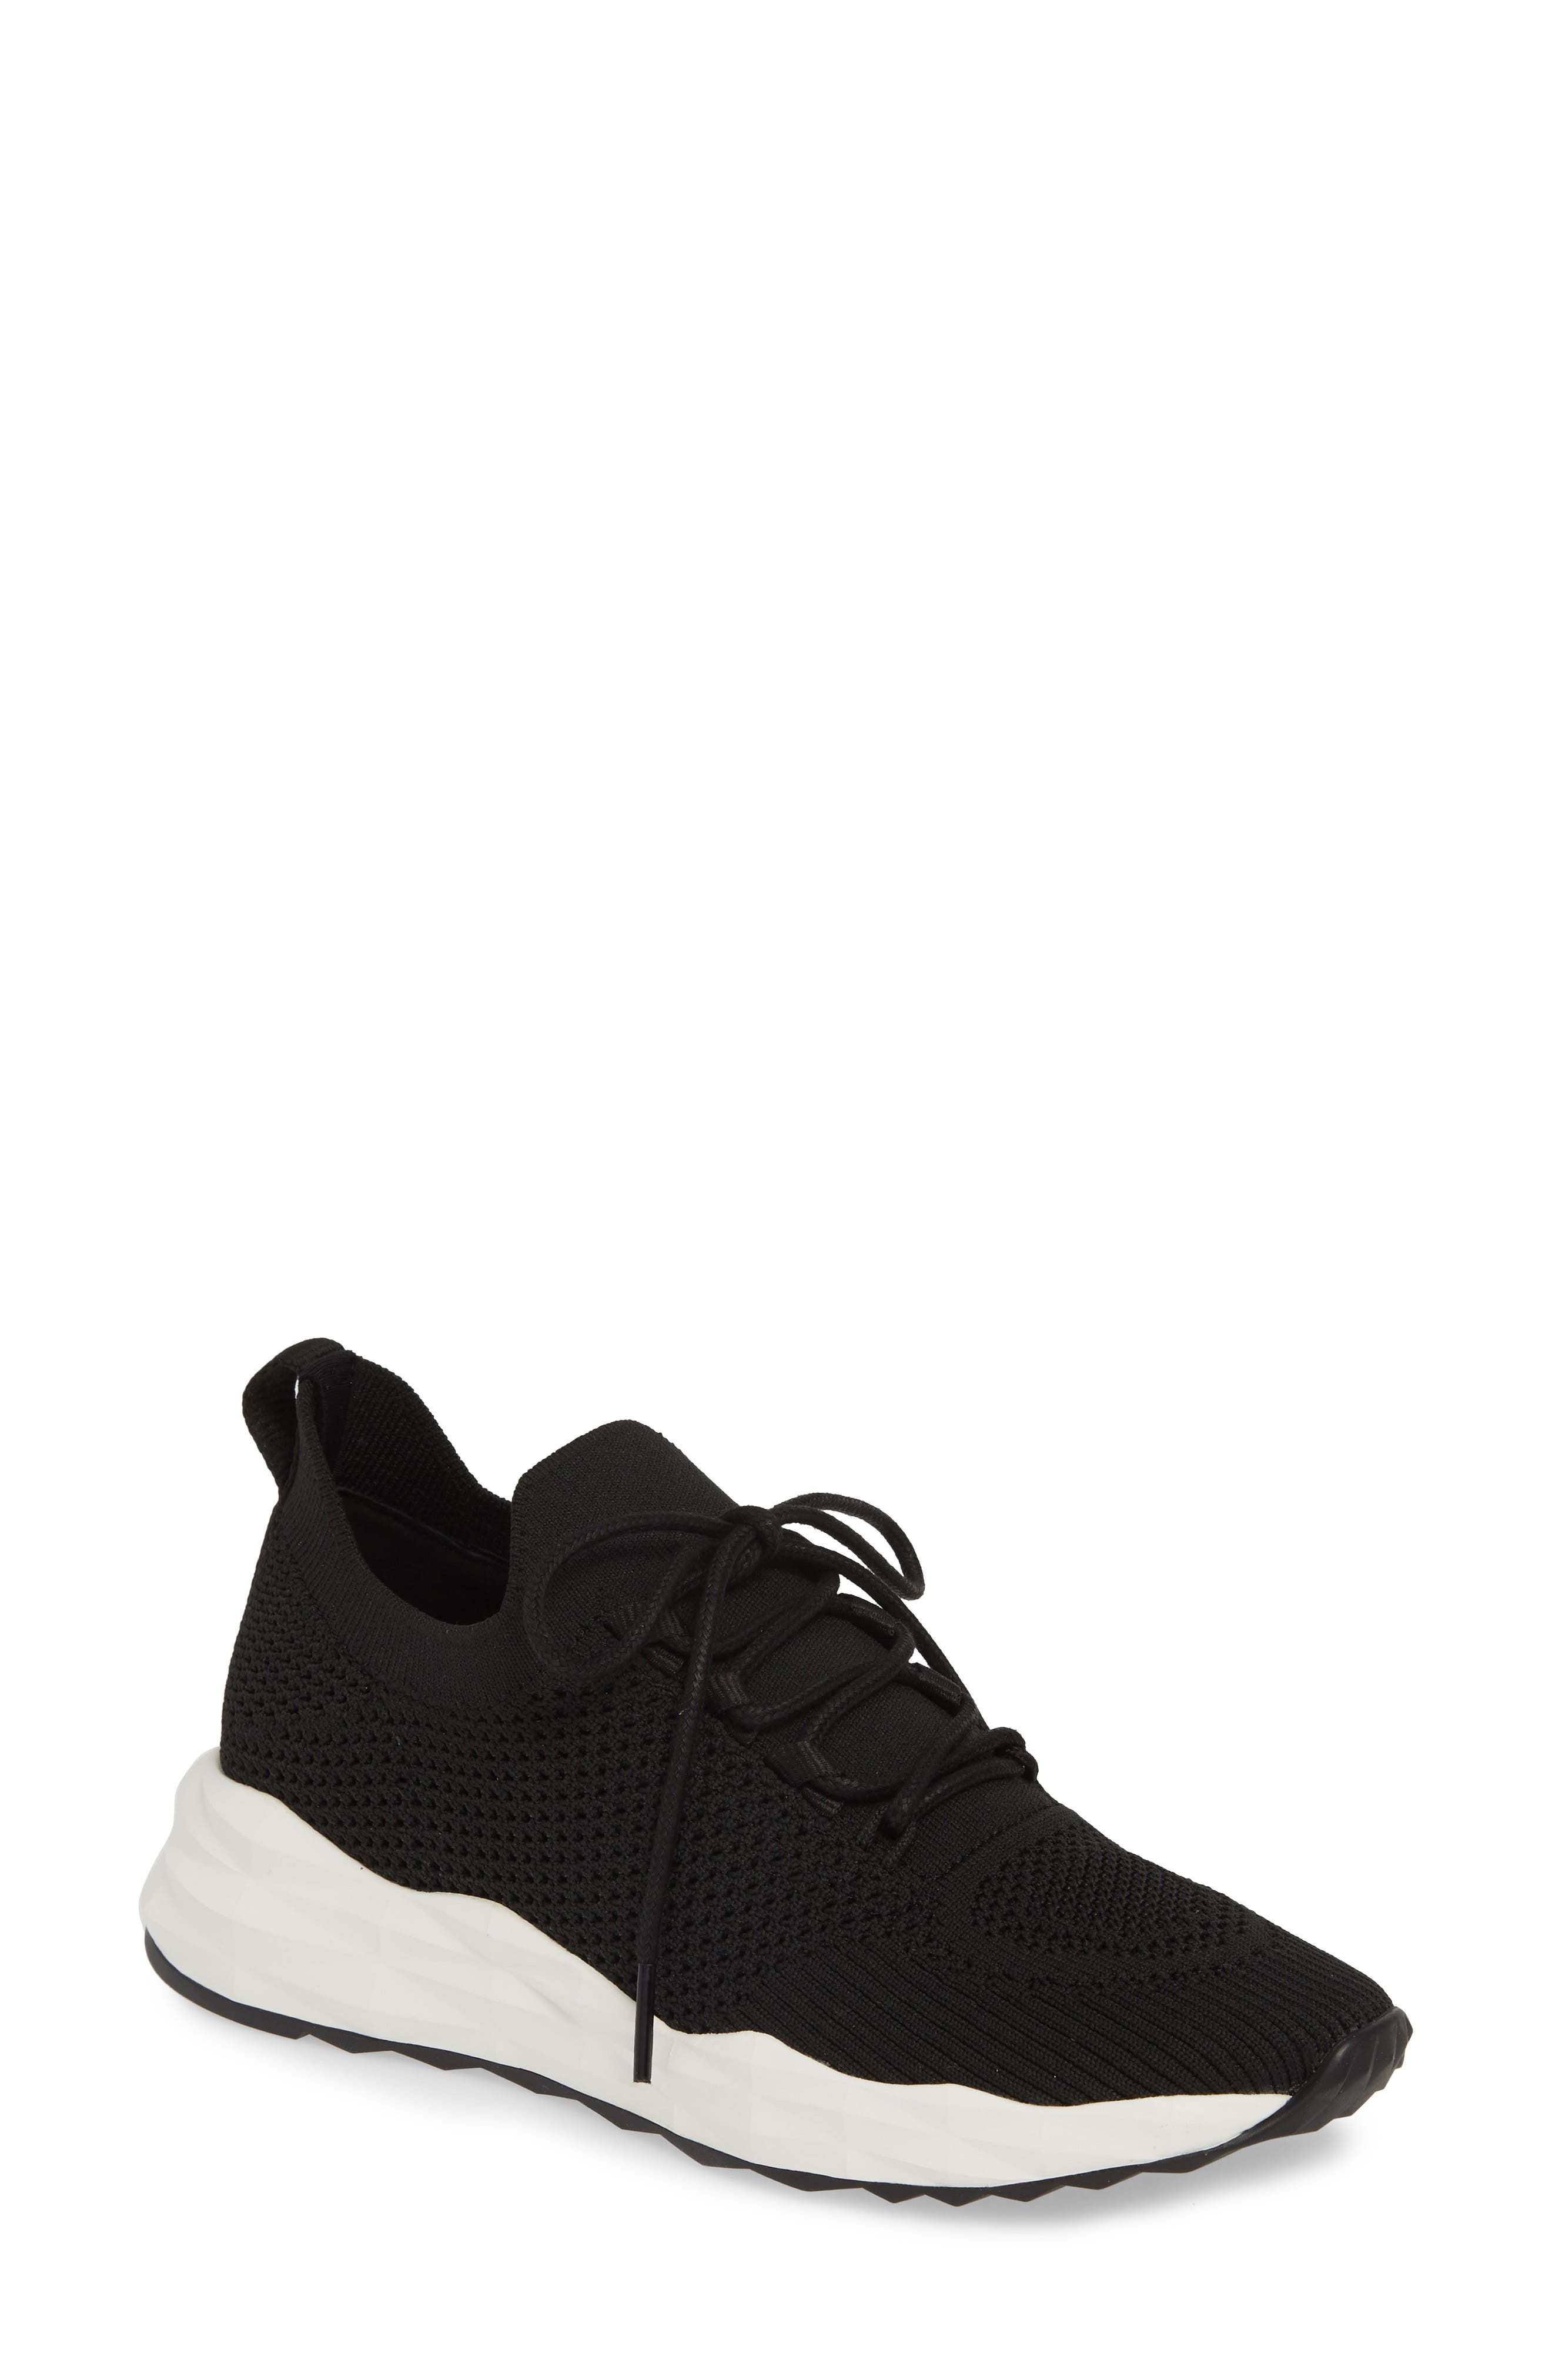 ASH, Knit Skate Sneaker, Main thumbnail 1, color, BLACK/ BLACK